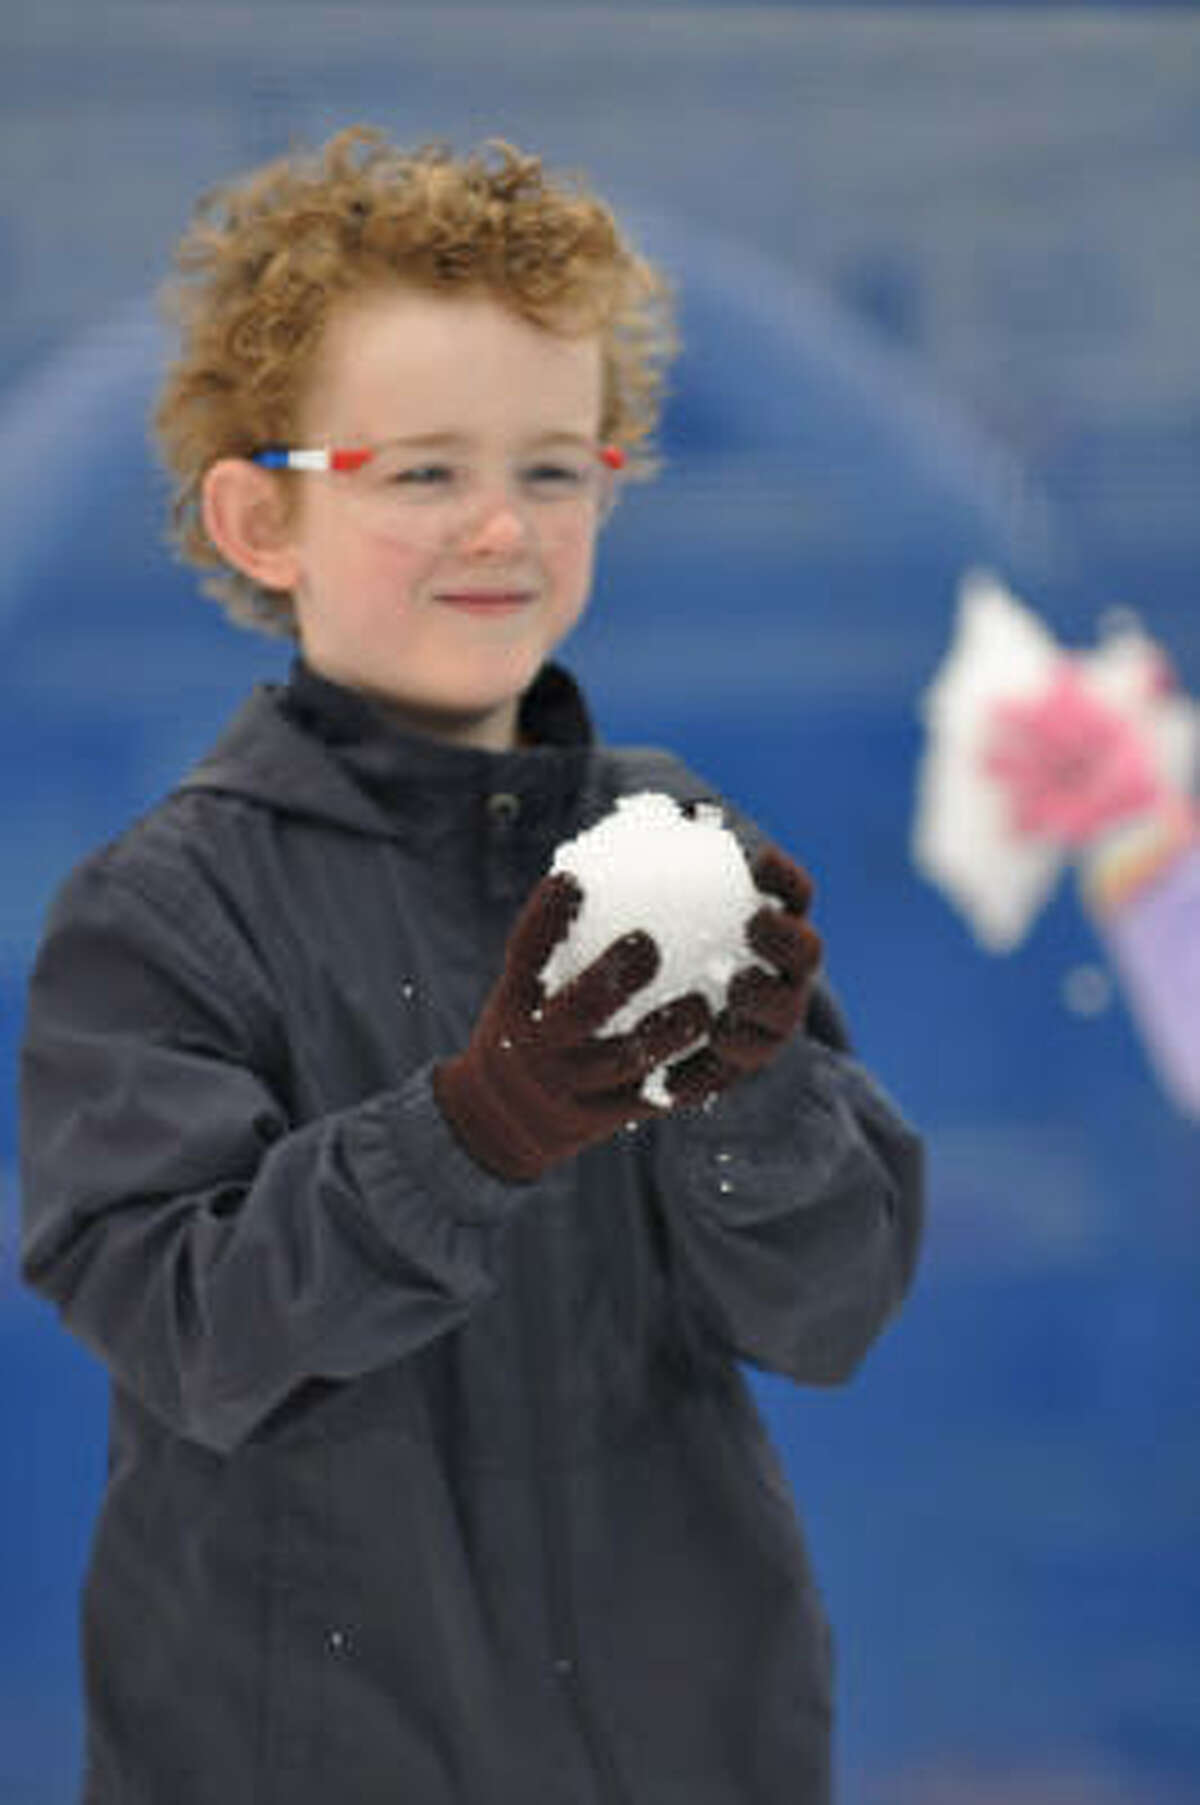 Wyatt Duhon age 9 enjoys the snow at the Winterfest that was held at Independence Park in Pearland. The event was sponsered by the Pearland Parks and Recreation.